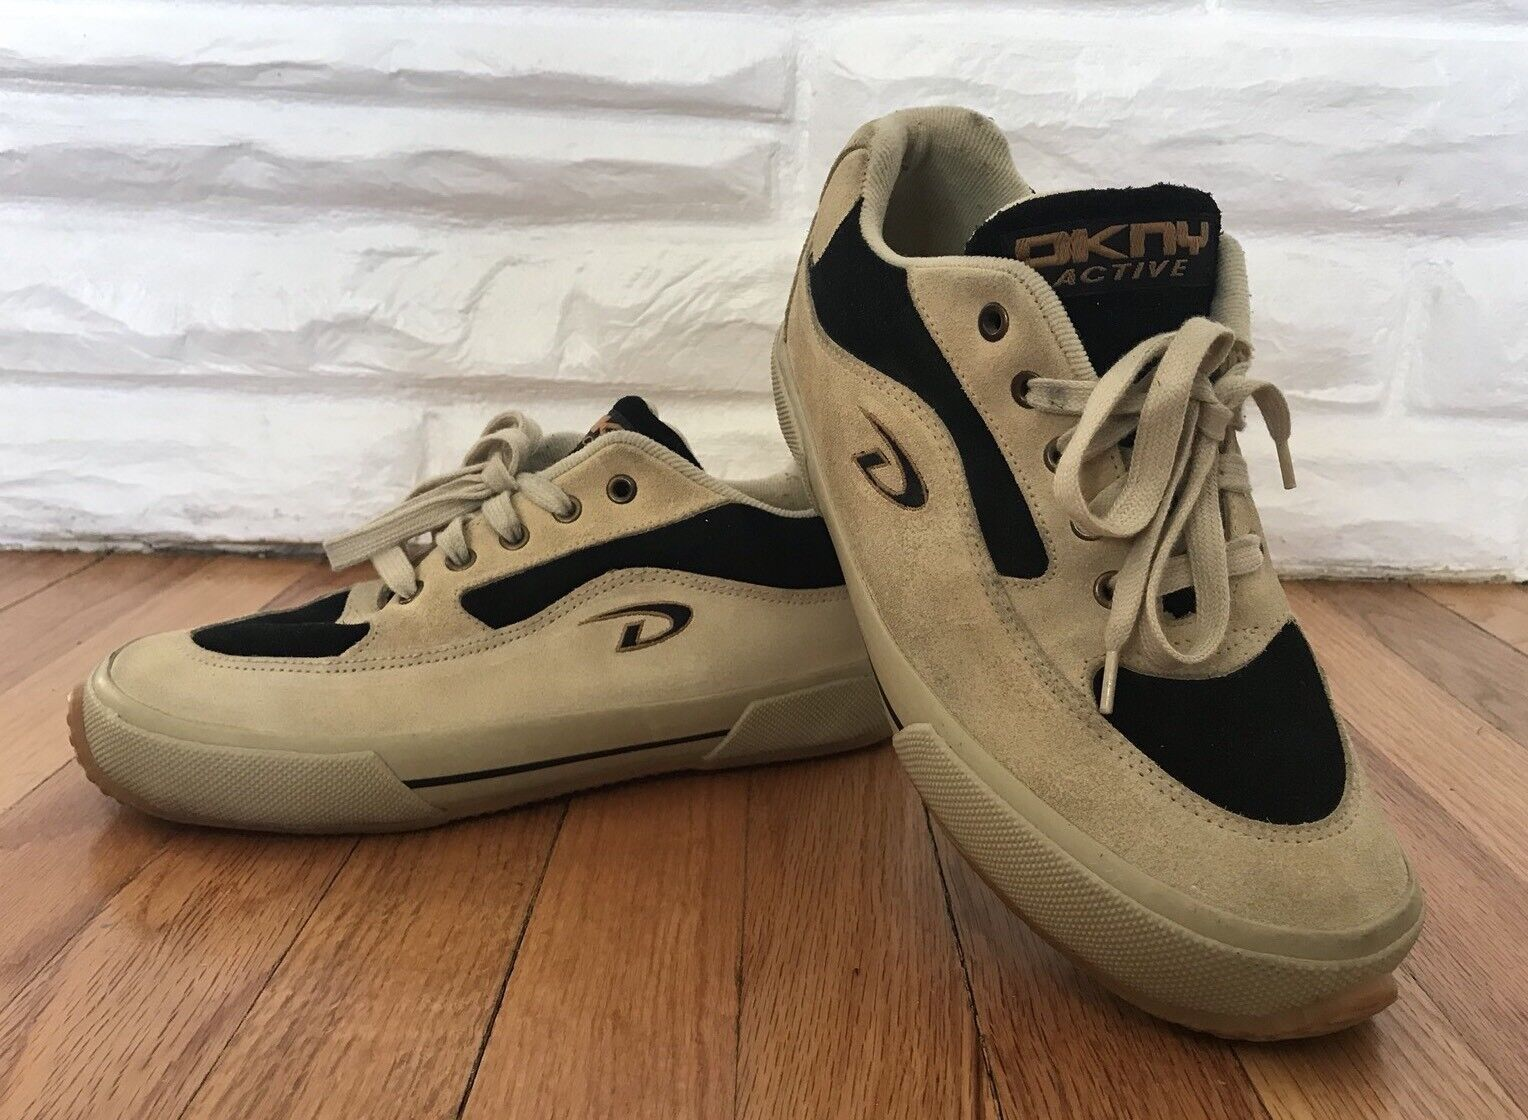 Vintage DKNY Beige And Black suede Sneakers size 10